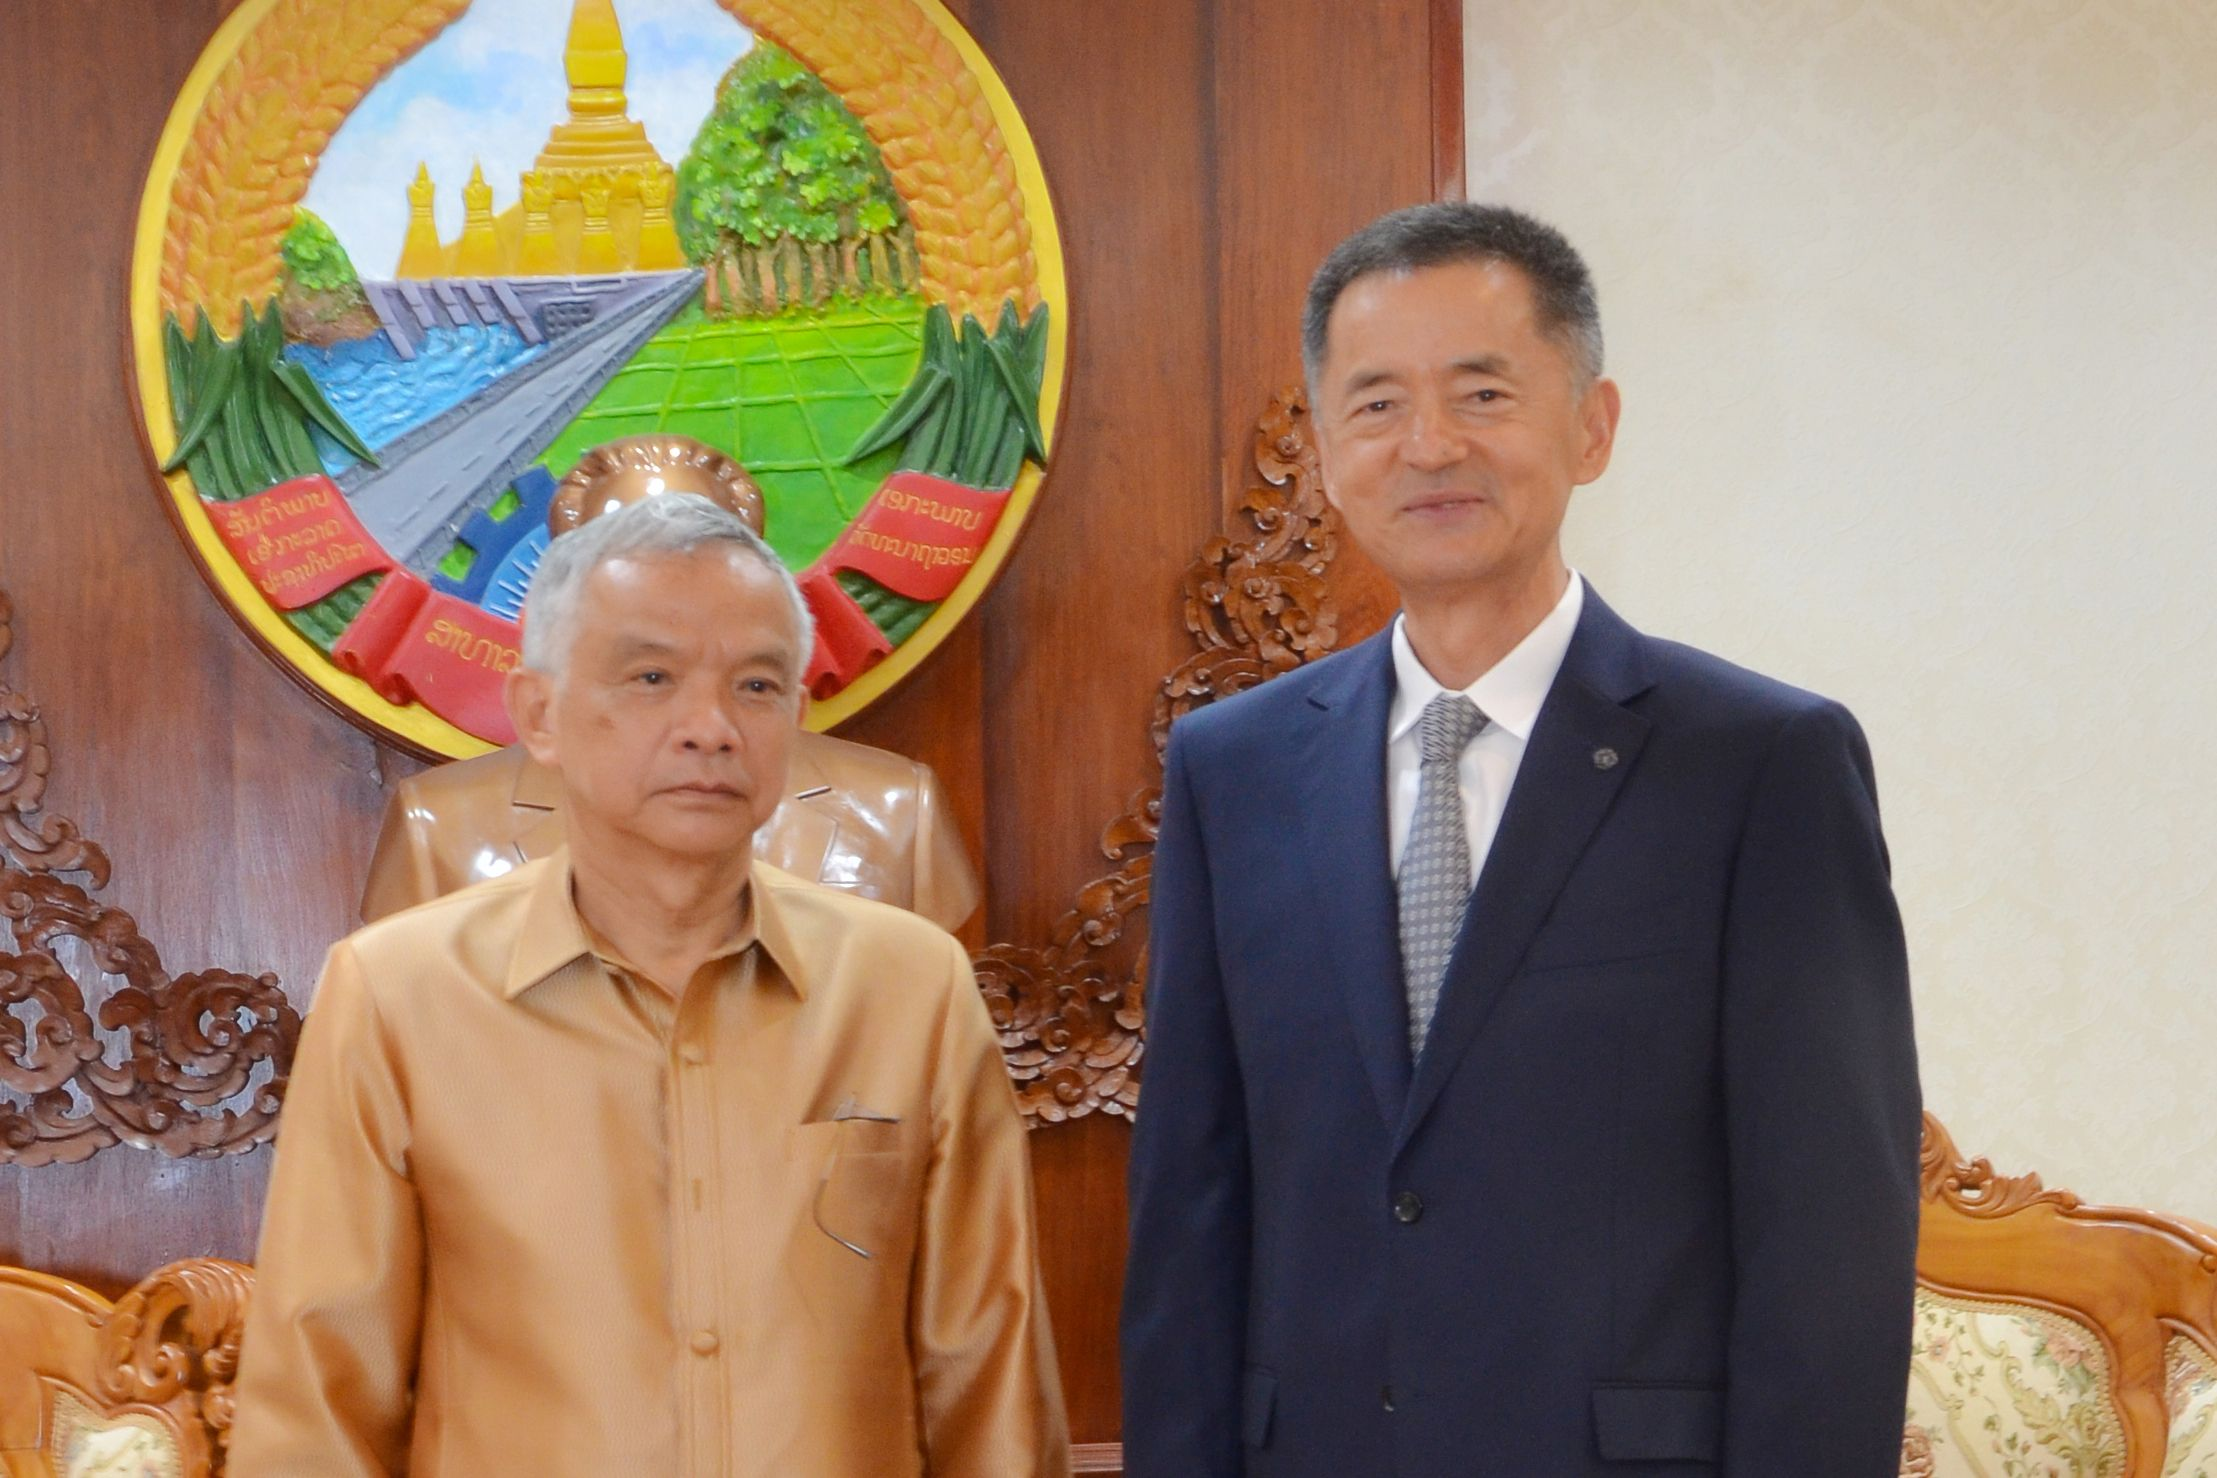 Mr Wang Jianhua, Chairman of Chifeng Jilong Gold, visits H.E. Sommad Pholsena, Vice President, National Assembly, and Vice Minister for Energy and Mines, Thongphat Inthavong, in Vientiane, Laos